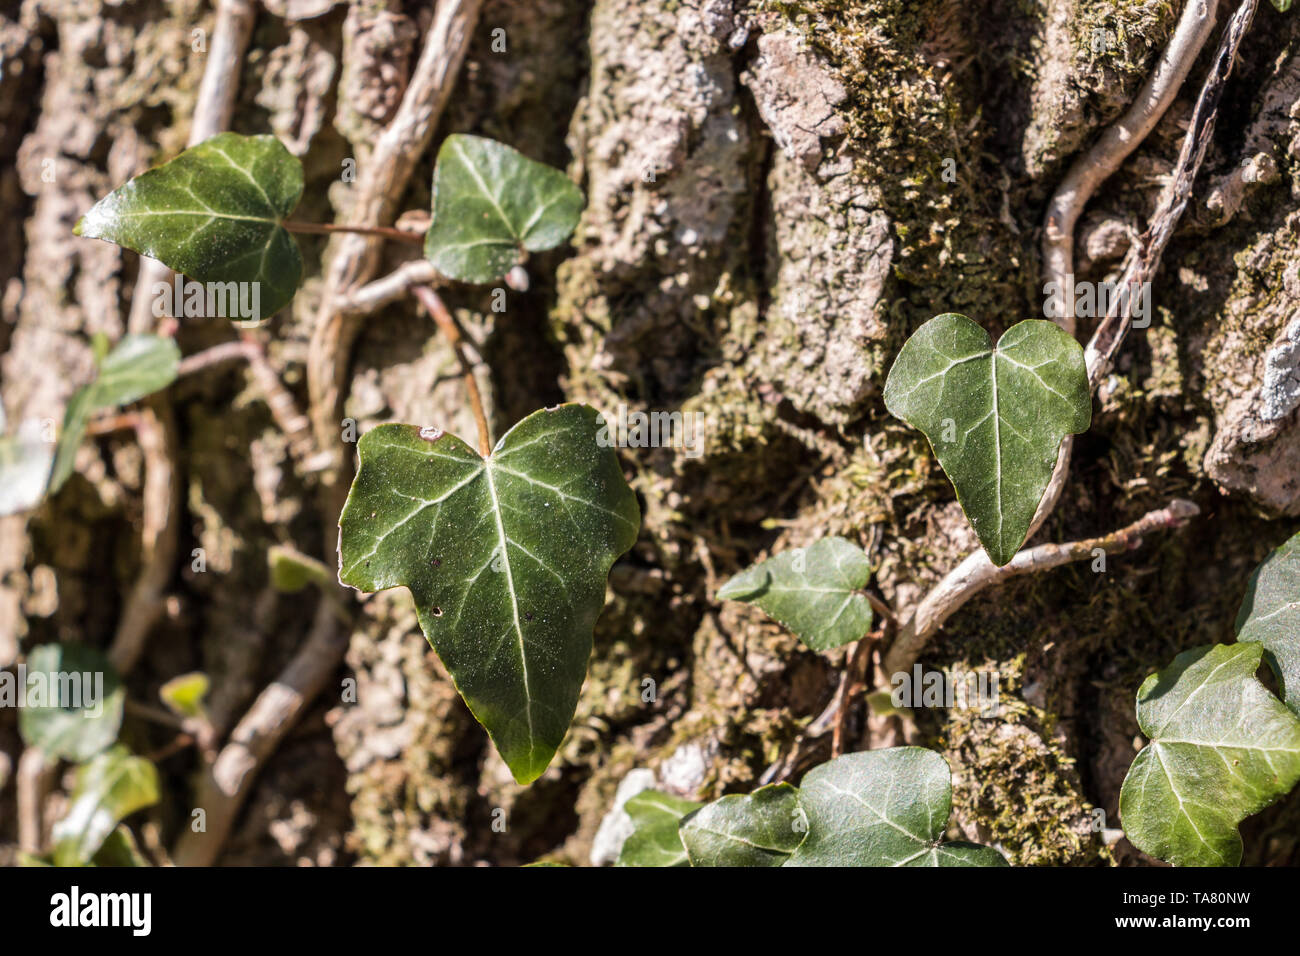 Green ivi and moss on a big tree trunk in the middle of the forest - Stock Image